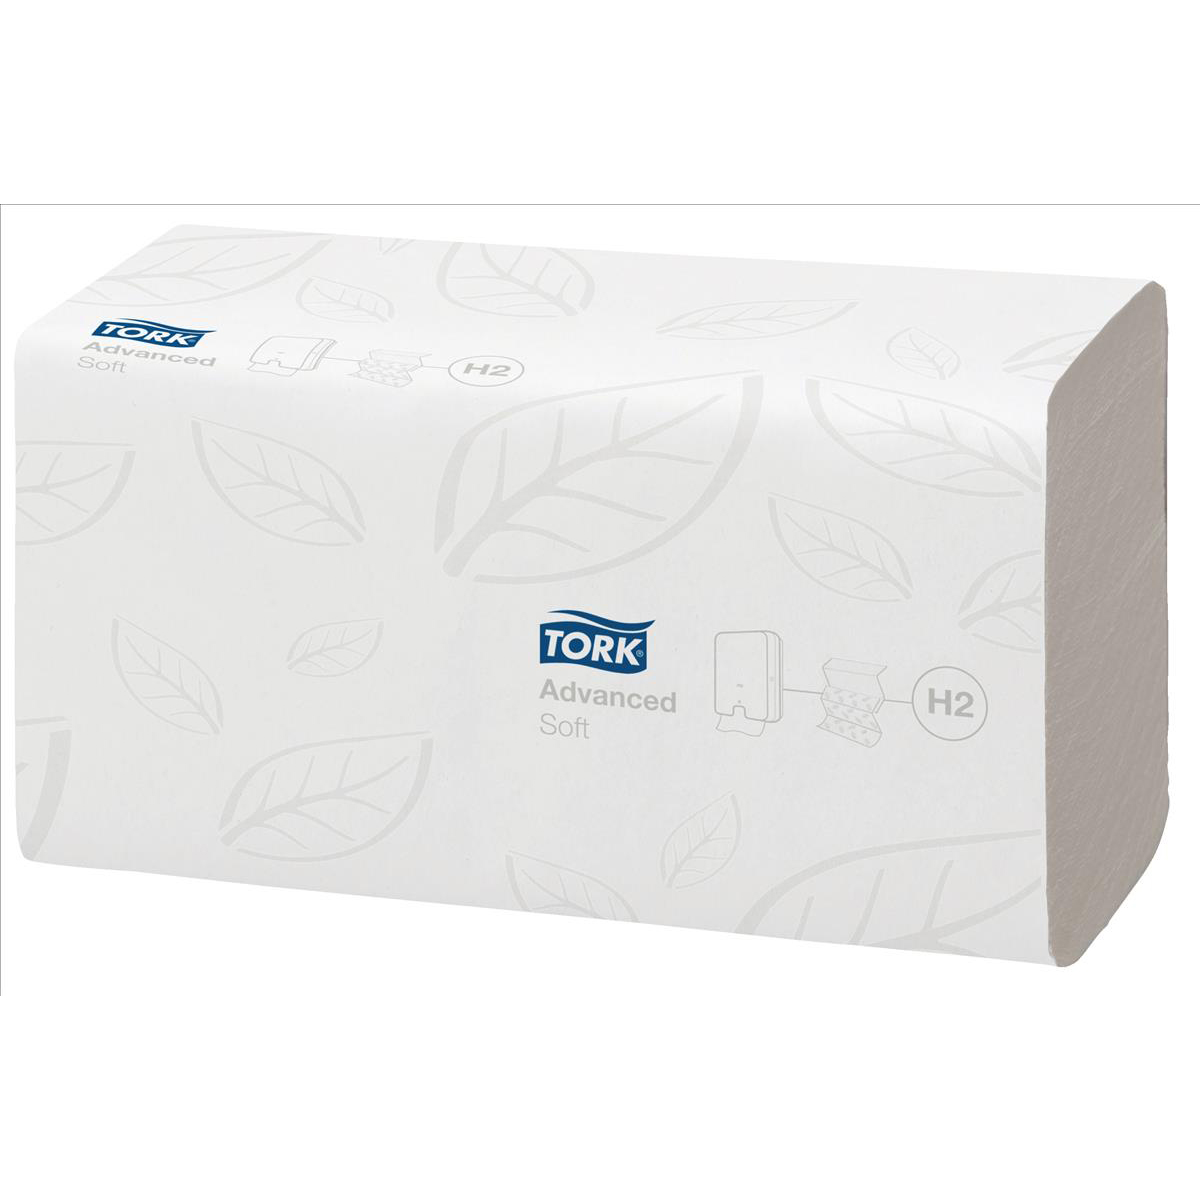 Tork Xpress Soft Hand Towel Multifold 2 Ply White 180 Sheets Per Stack [Pack 21]